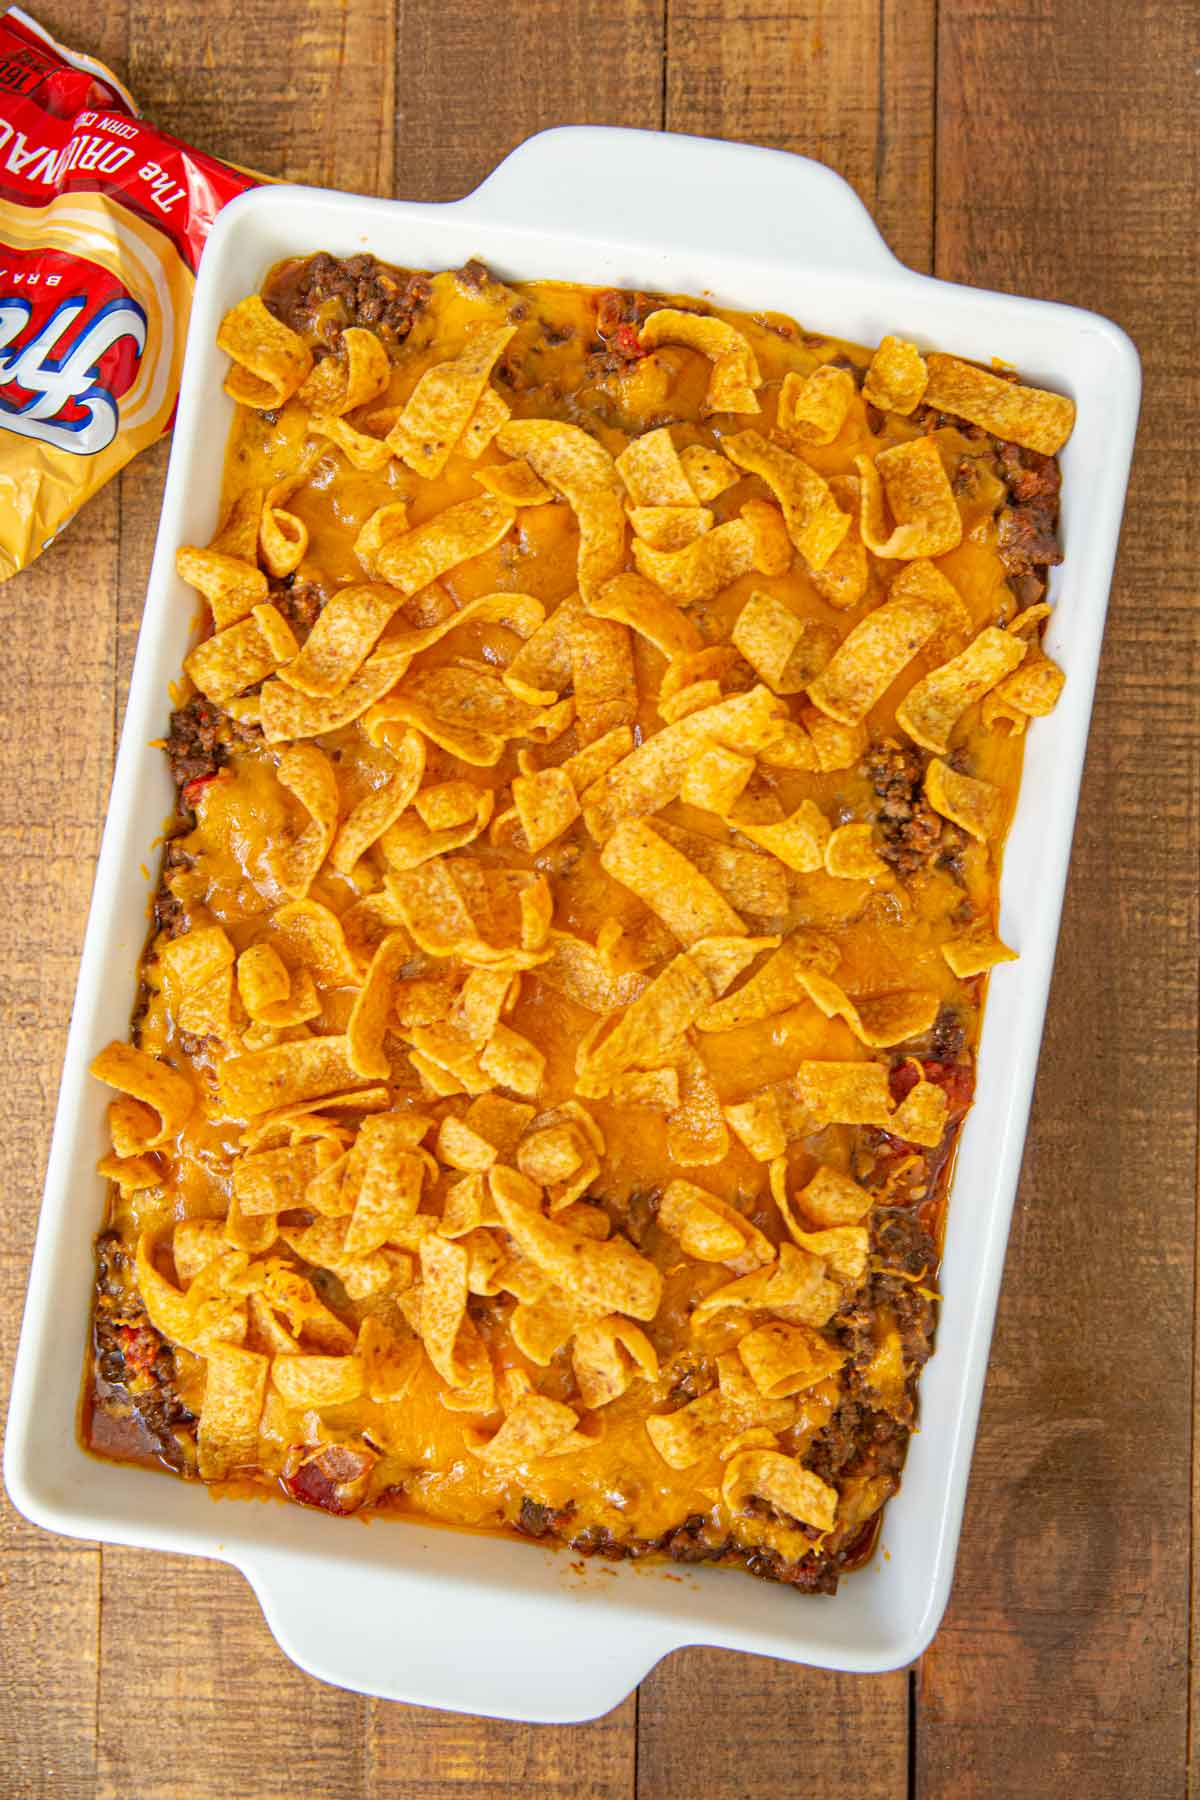 Taco Casserole with Fritos and cheese